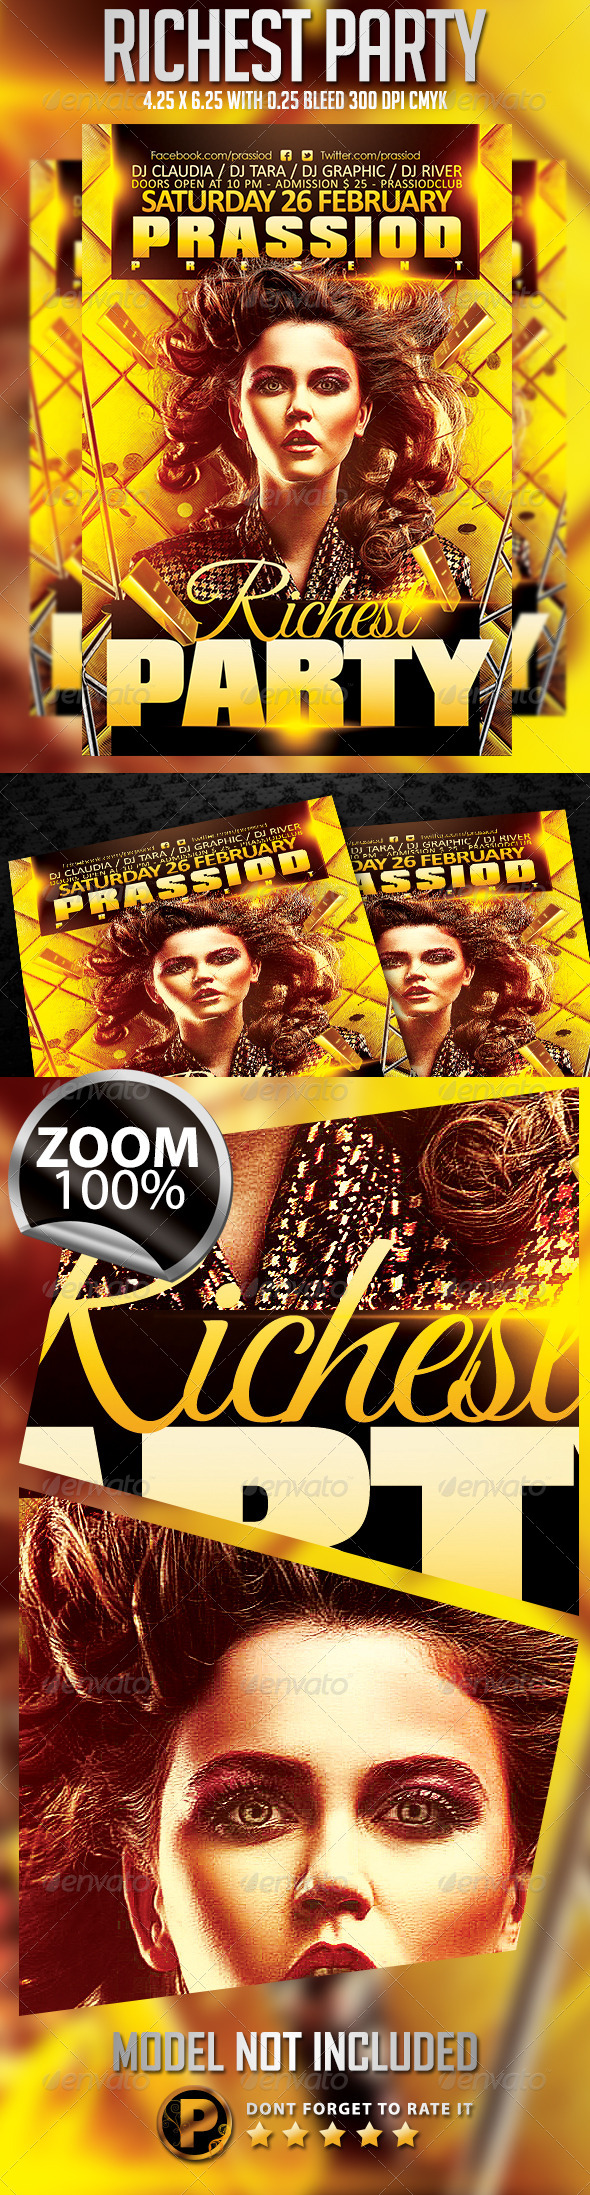 Richest Party Flyer Template - Clubs & Parties Events